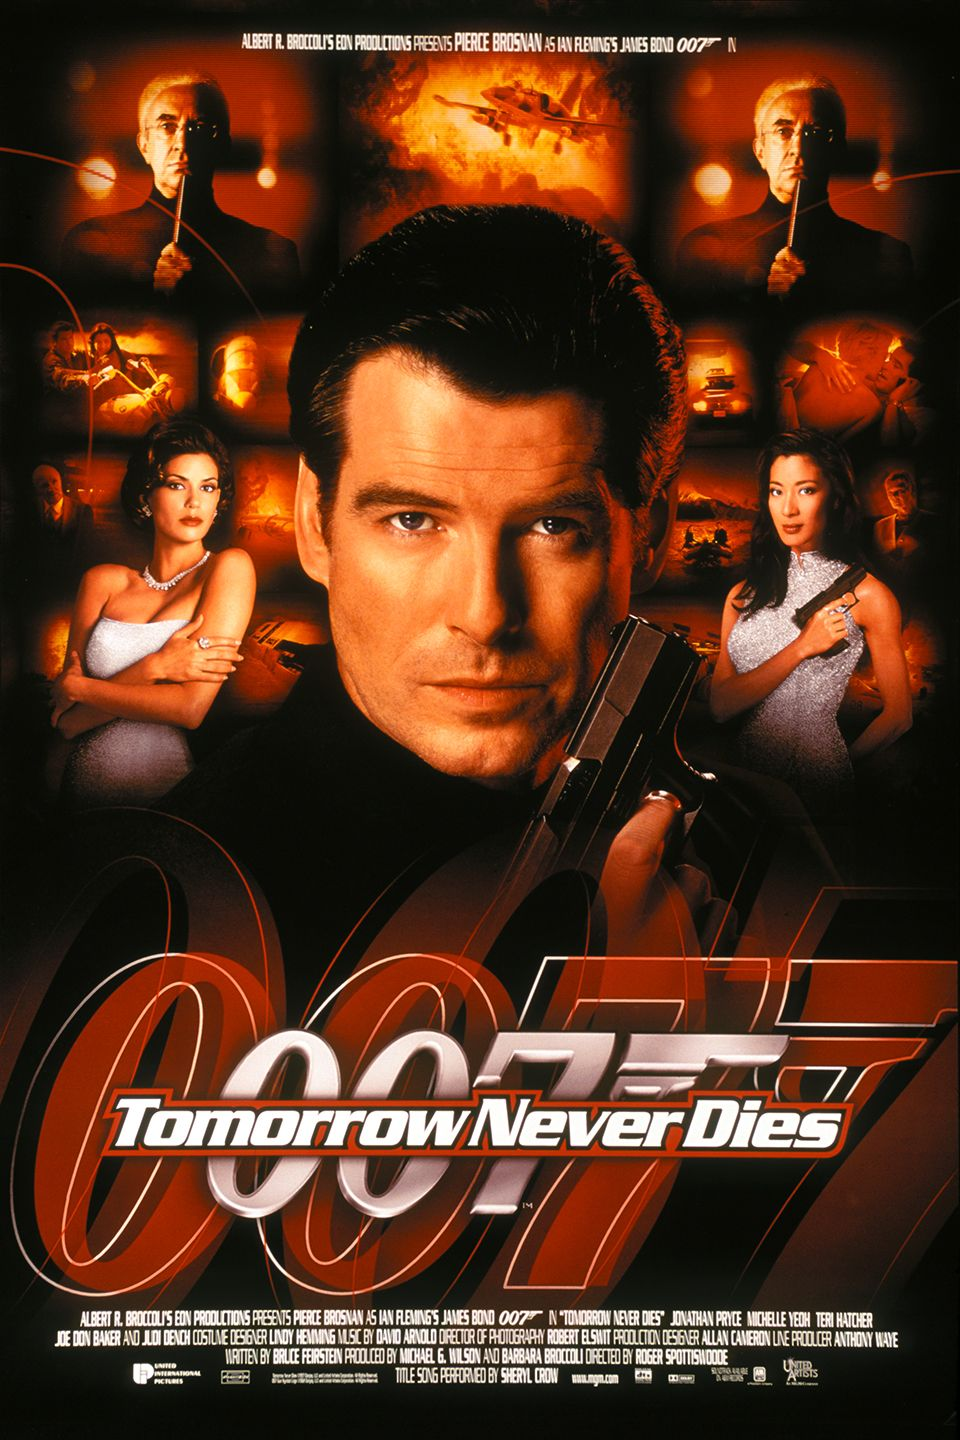 Tomorrow Never Dies With Images James Bond Movie Posters Bond